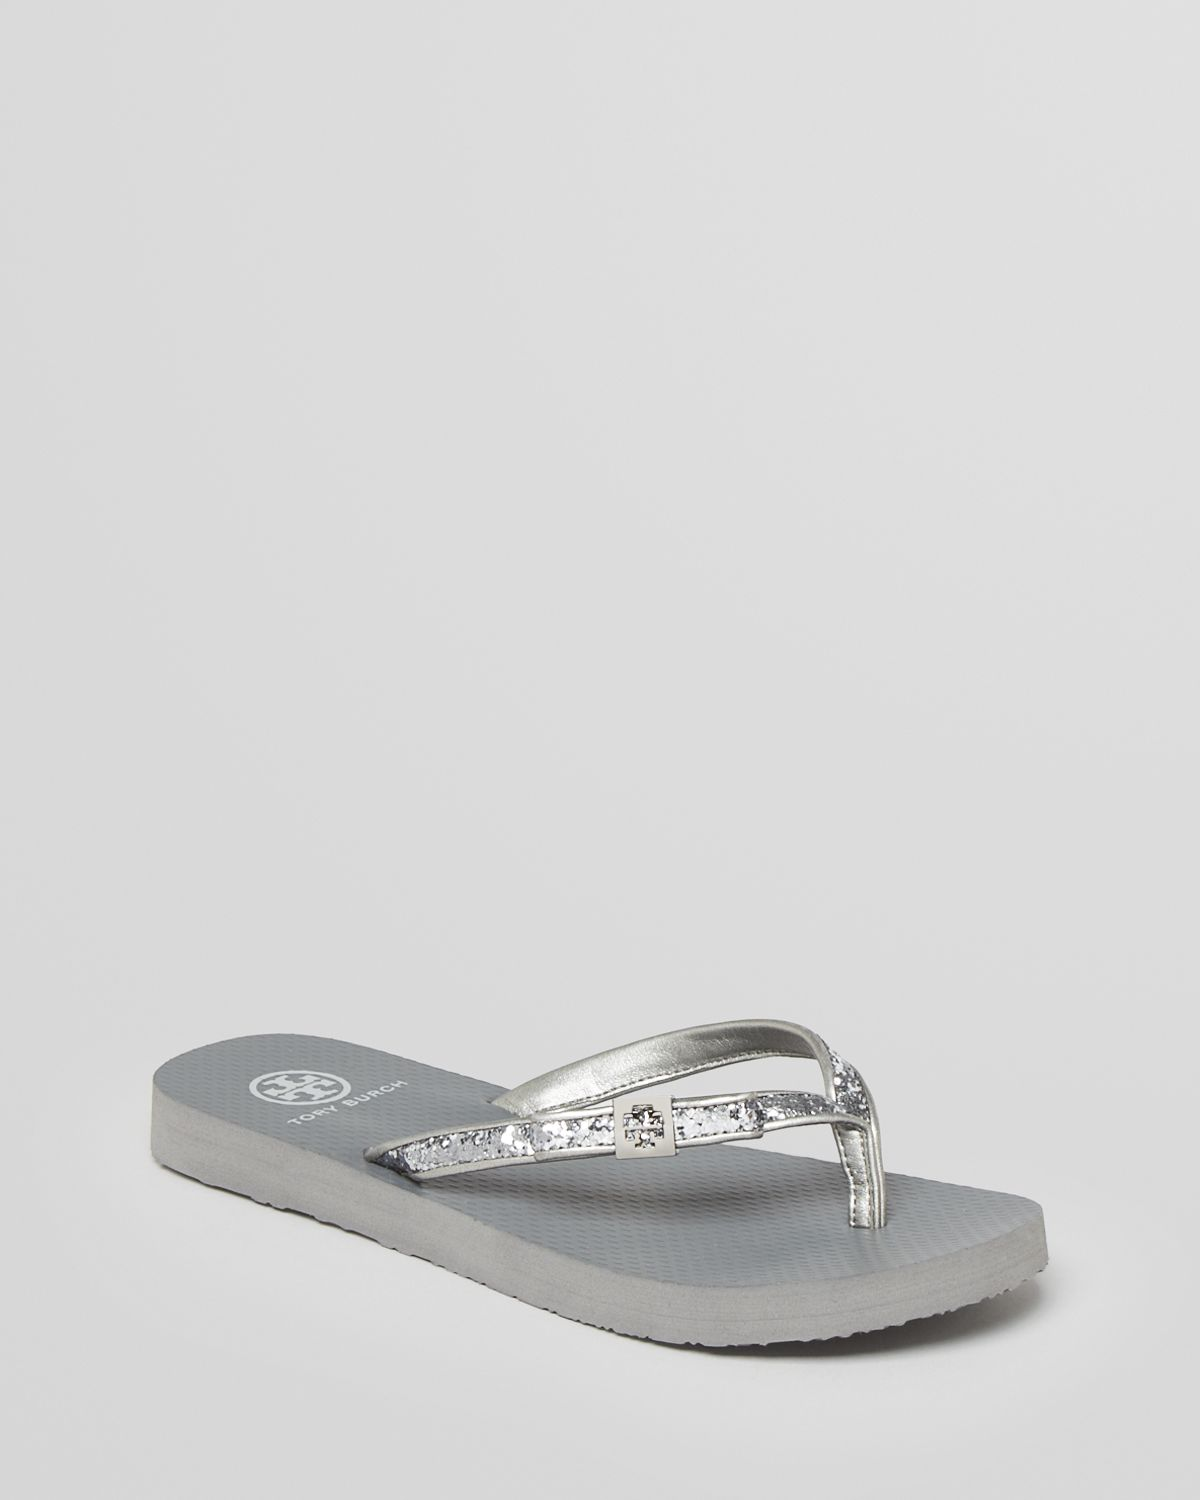 058c73b7a Lyst - Tory Burch Flip Flops in Metallic